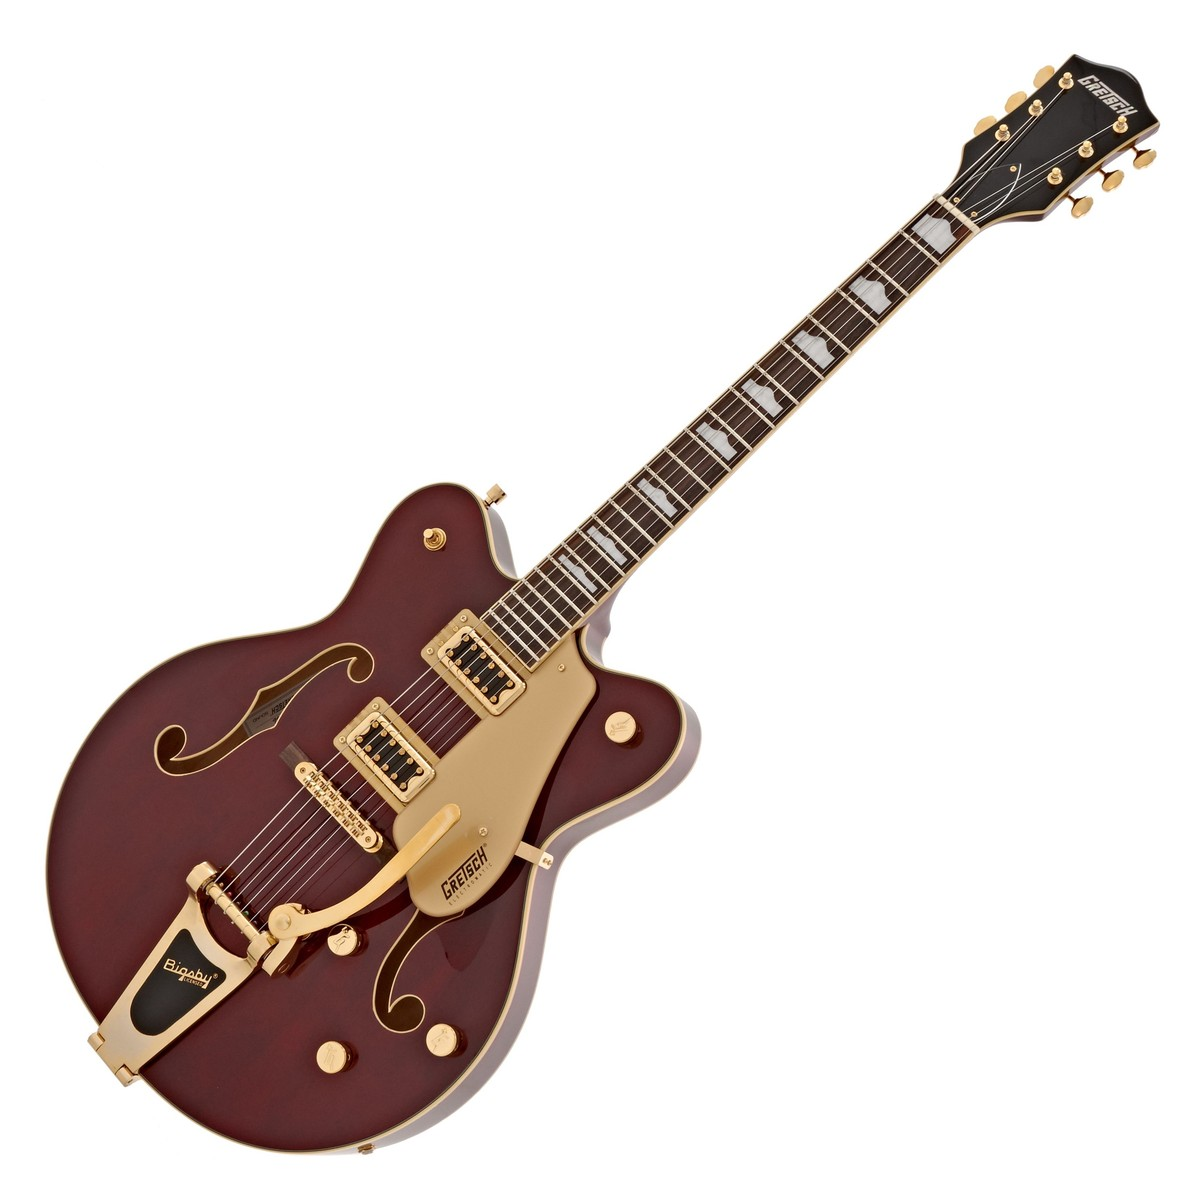 Gretsch G5422tg Electromatic Hollow Body Guitar Walnut